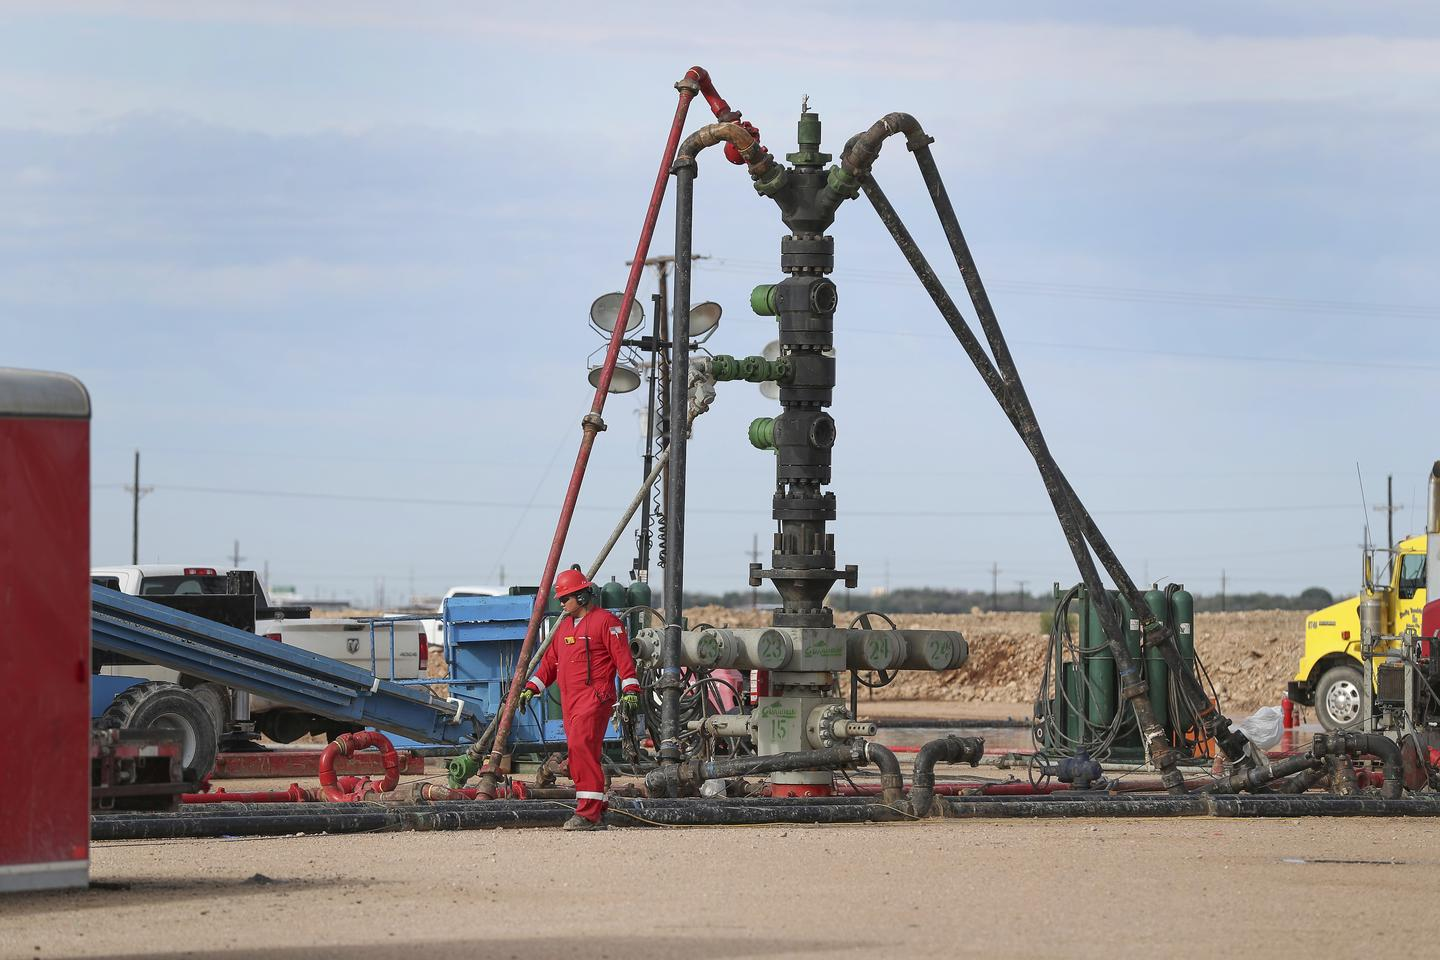 Congress, Look at Texas for the Facts on Fracking